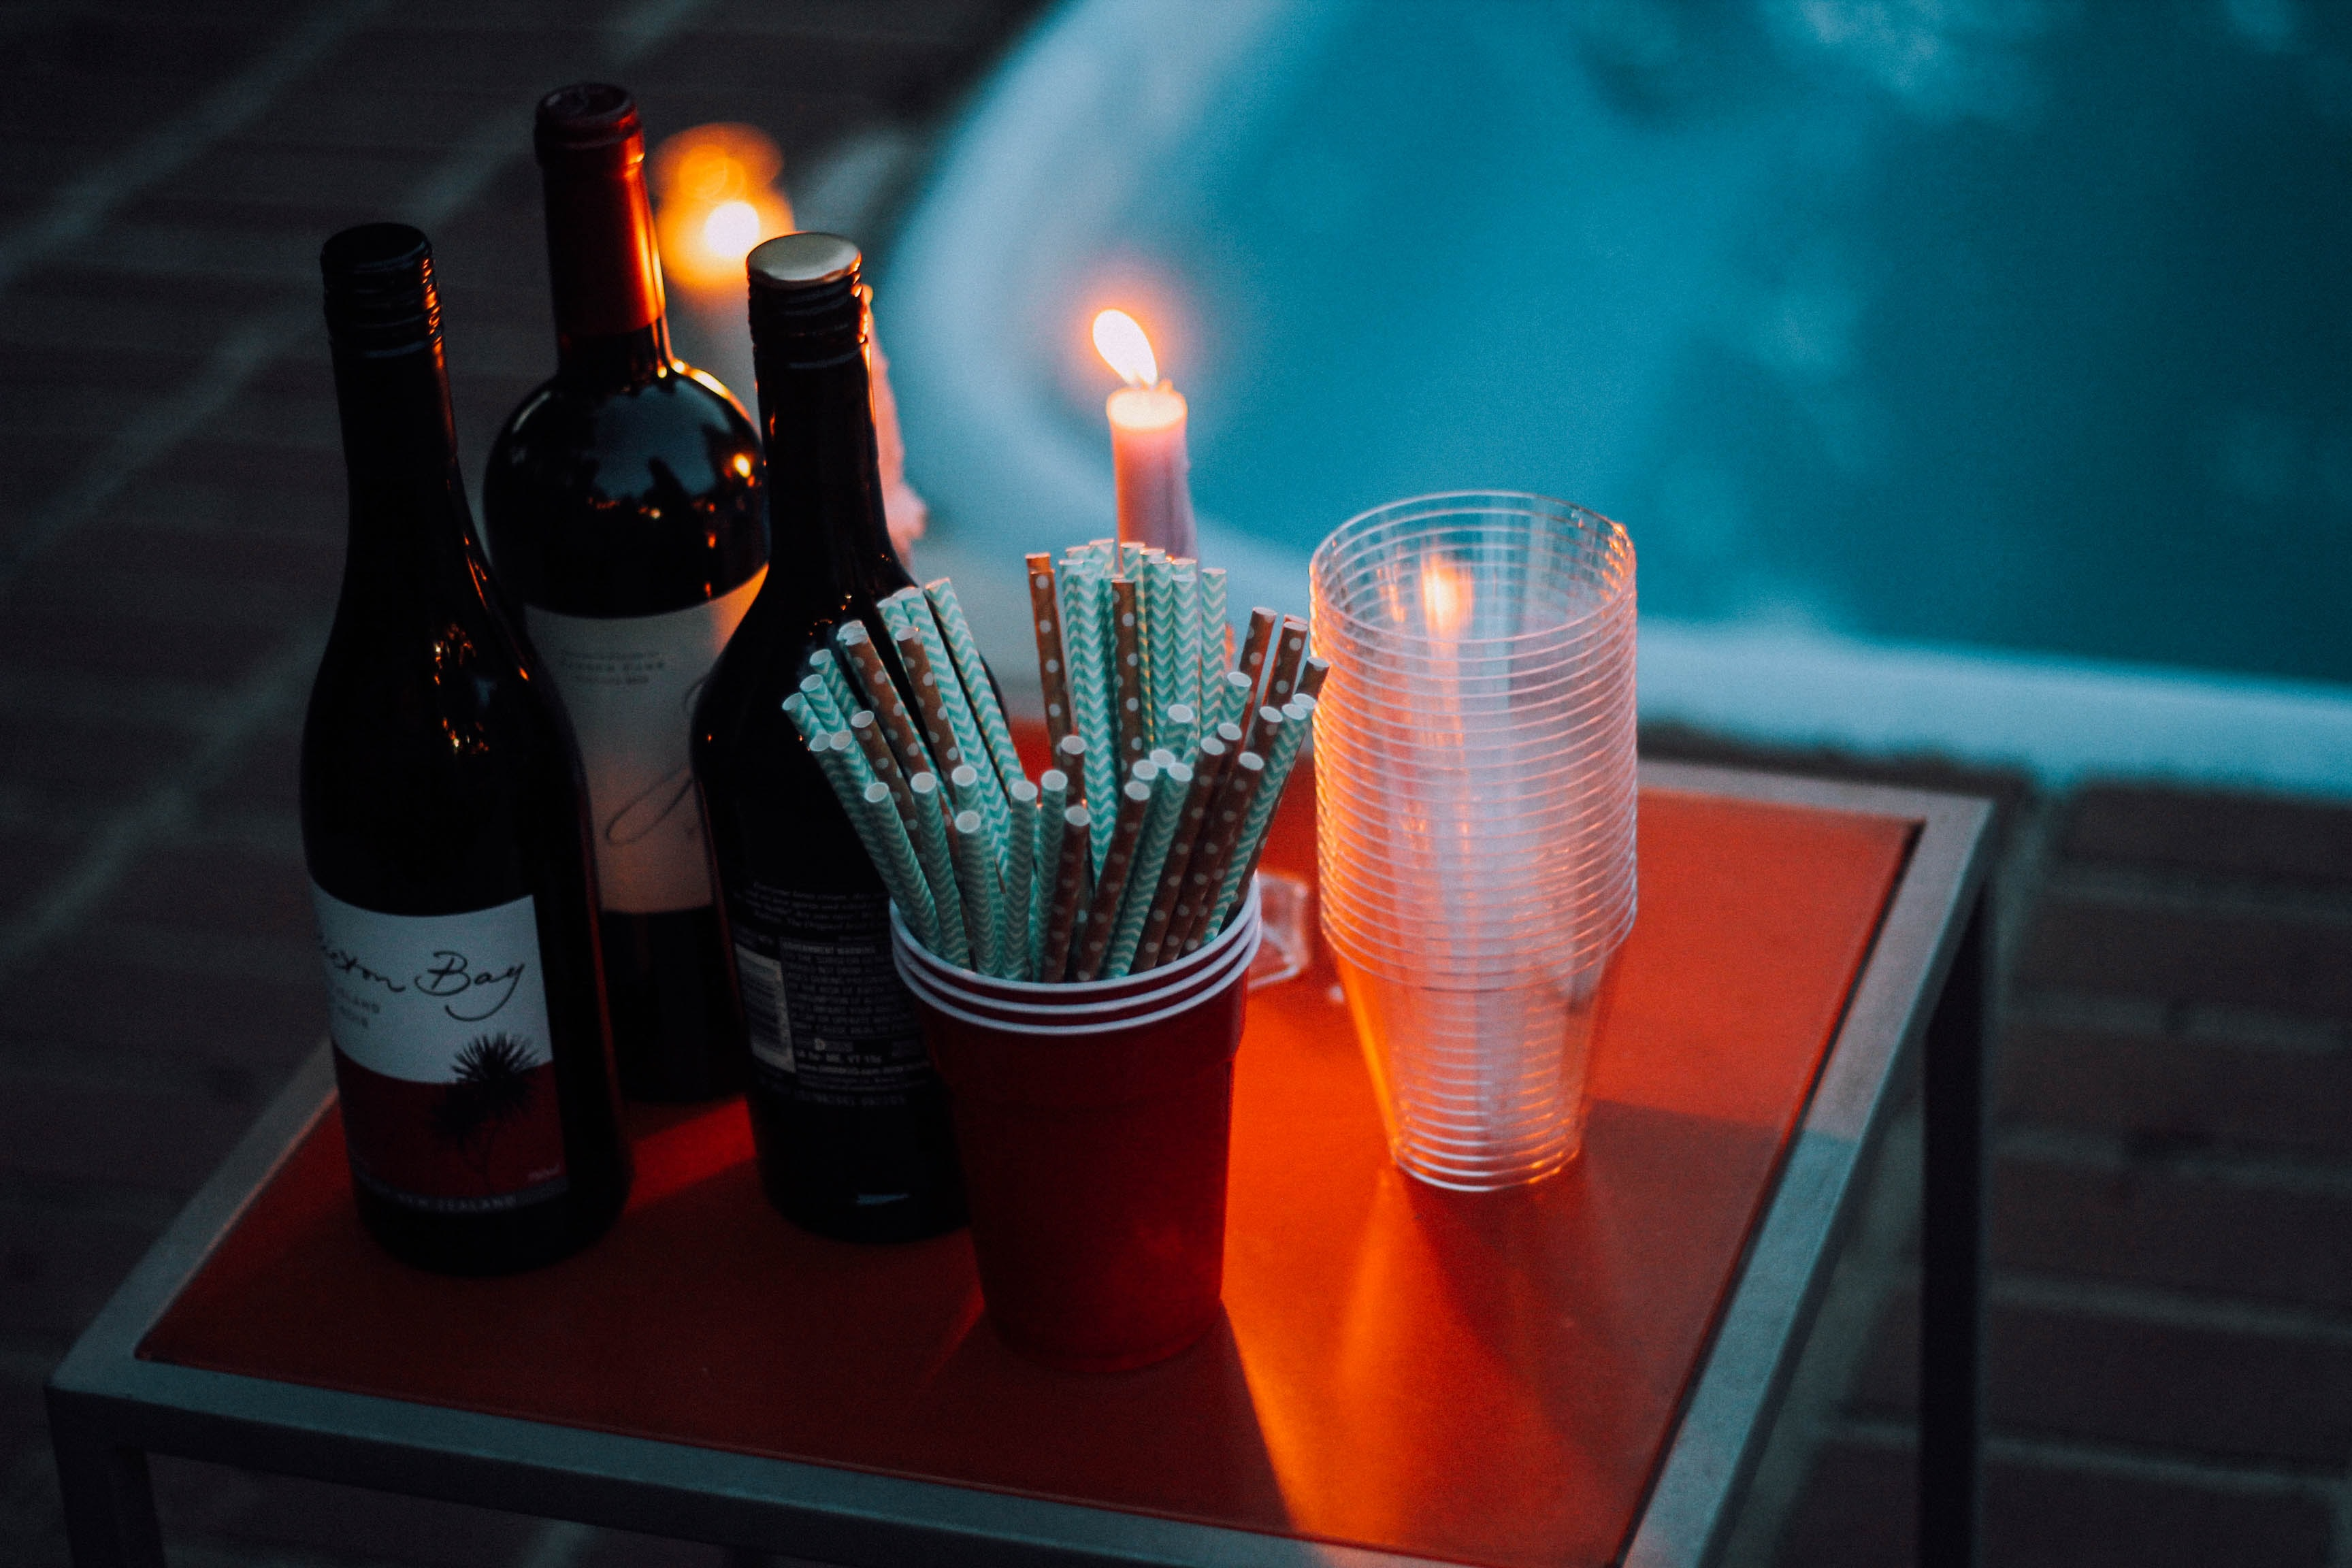 three wine bottles near cup and candle on square red table